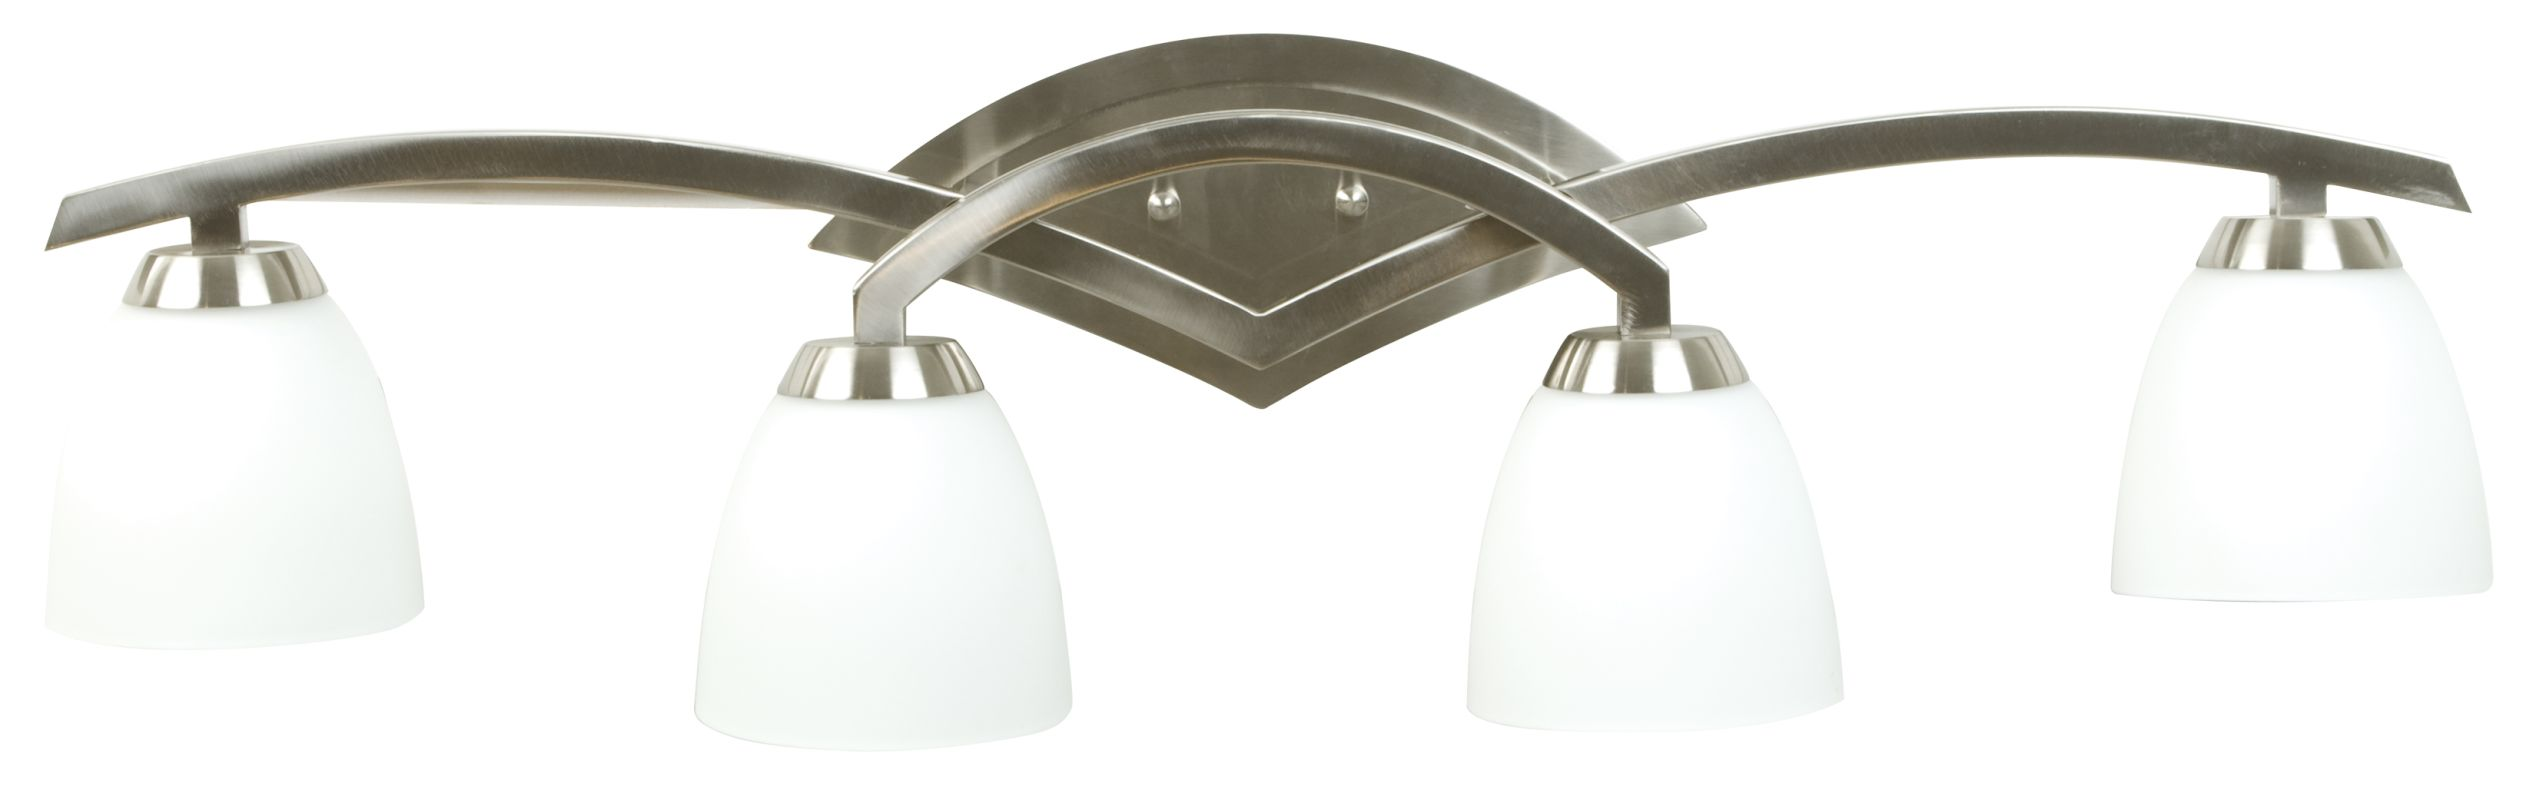 Craftmade 14035 Viewpoint 4 Light Bathroom Vanity Light - 35 Inches